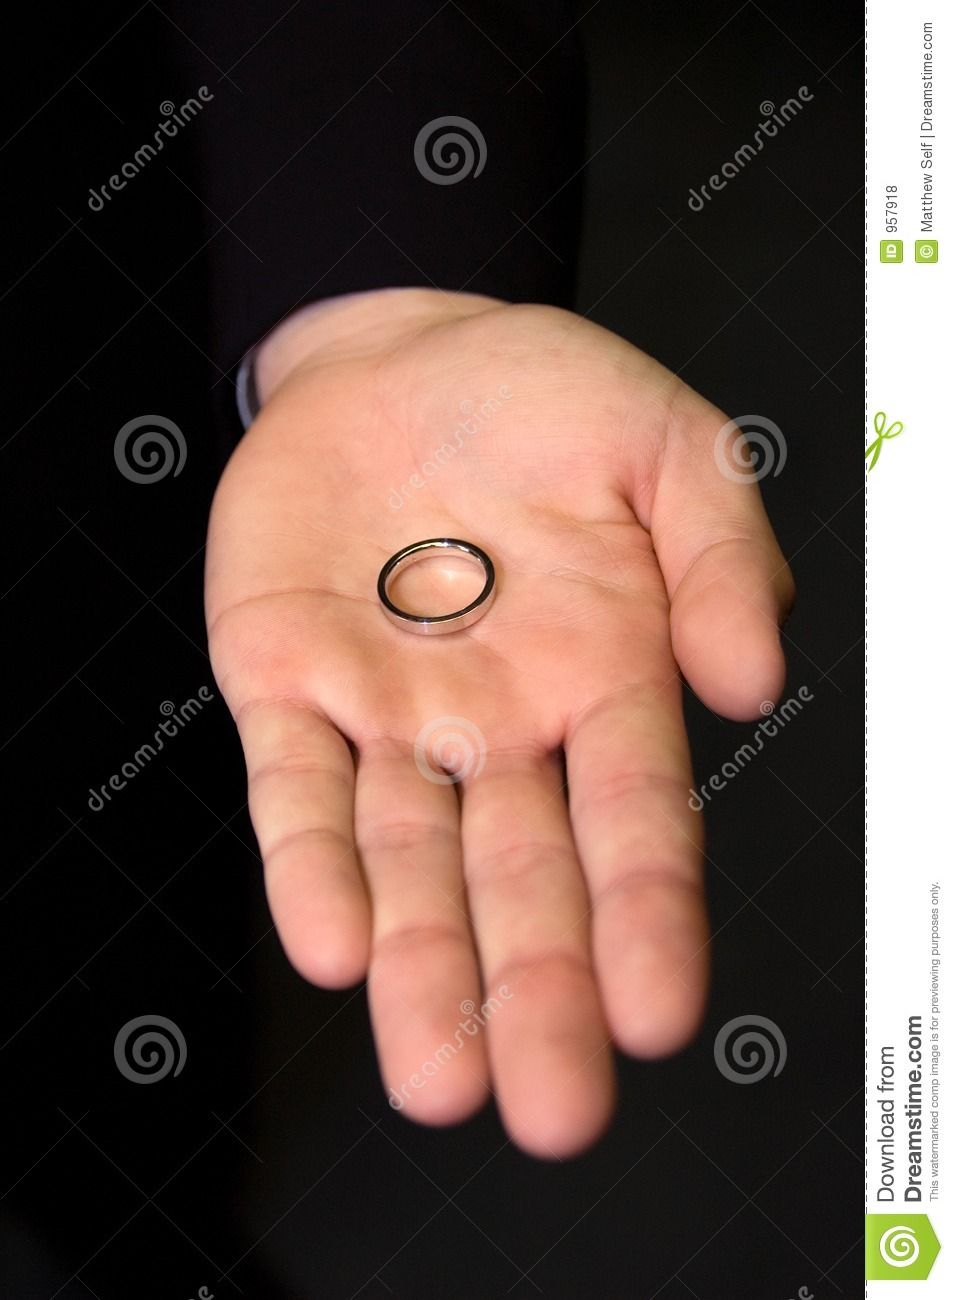 Gold ring in hand stock photo. Image of wedding, band, ring - 957918